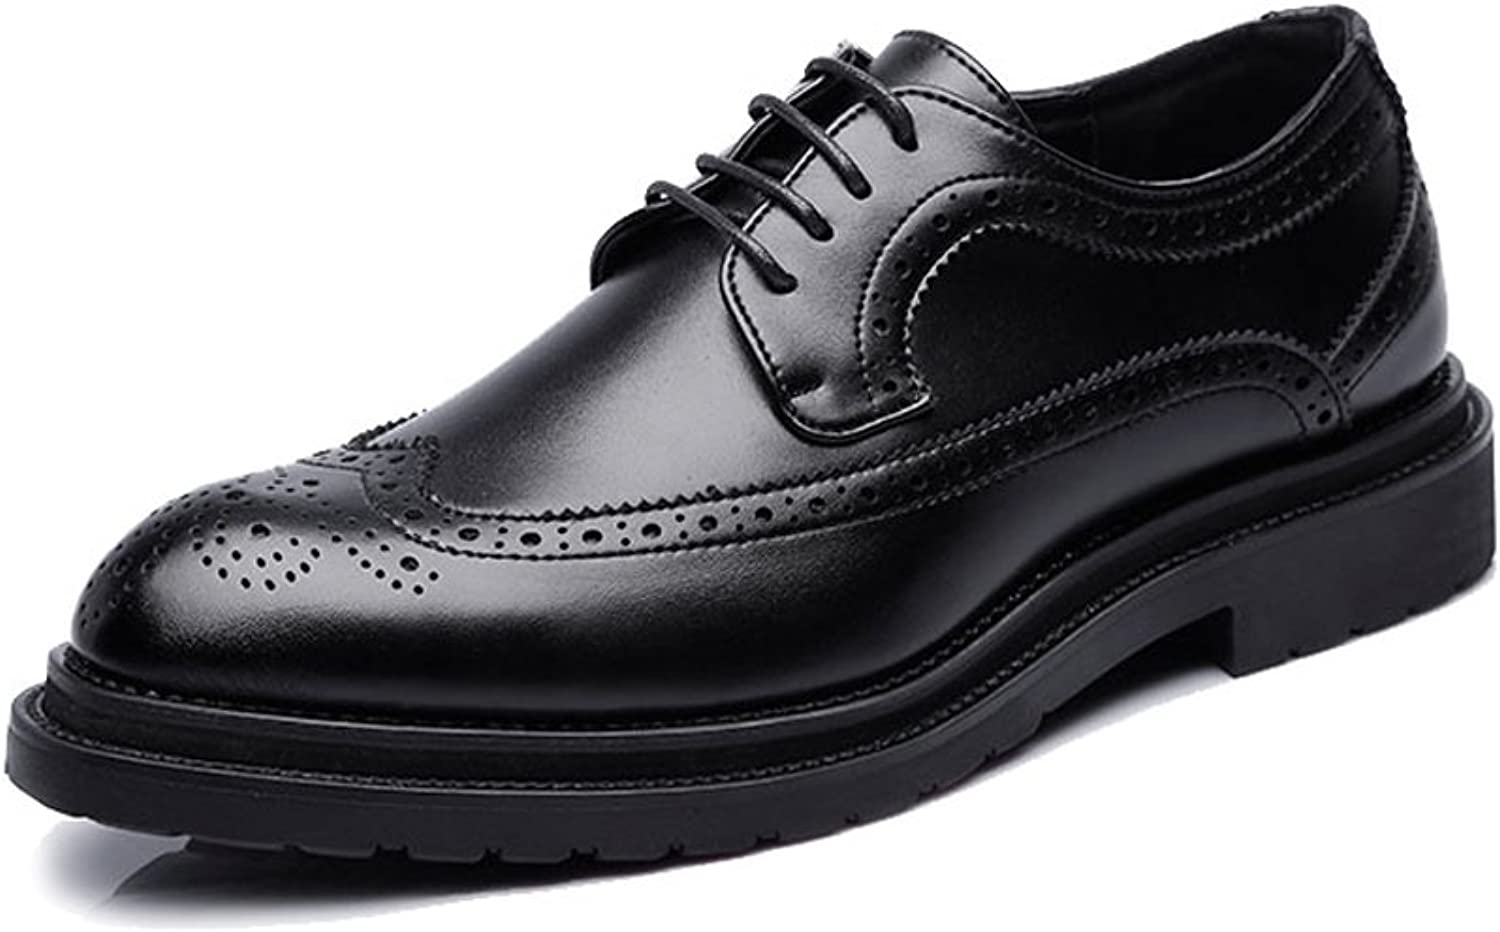 XHD- Classic shoes Simple Men's Business Brogue shoes PU Leather Upper Lace Up